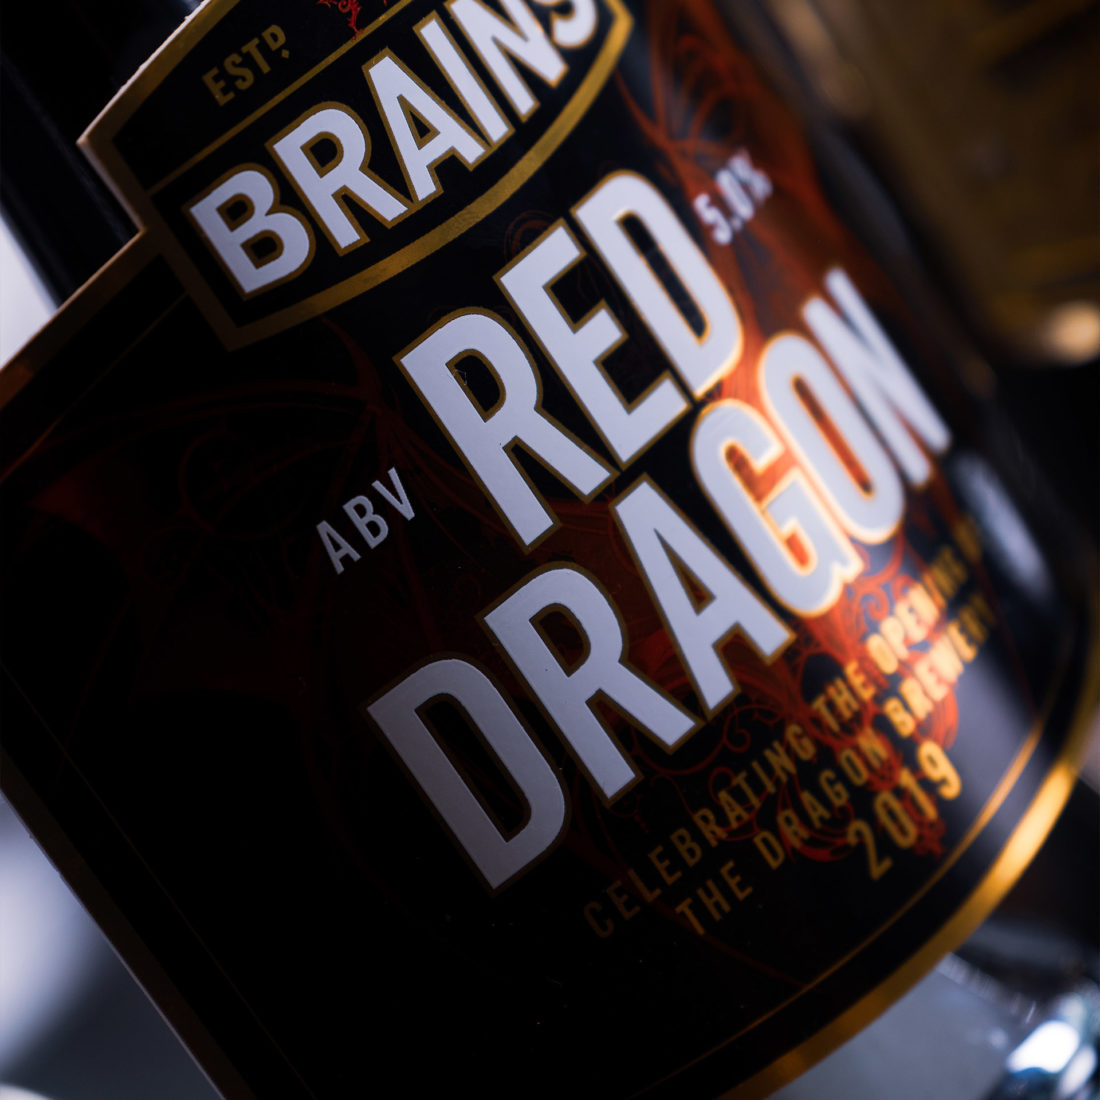 The Red Dragon pump-clip